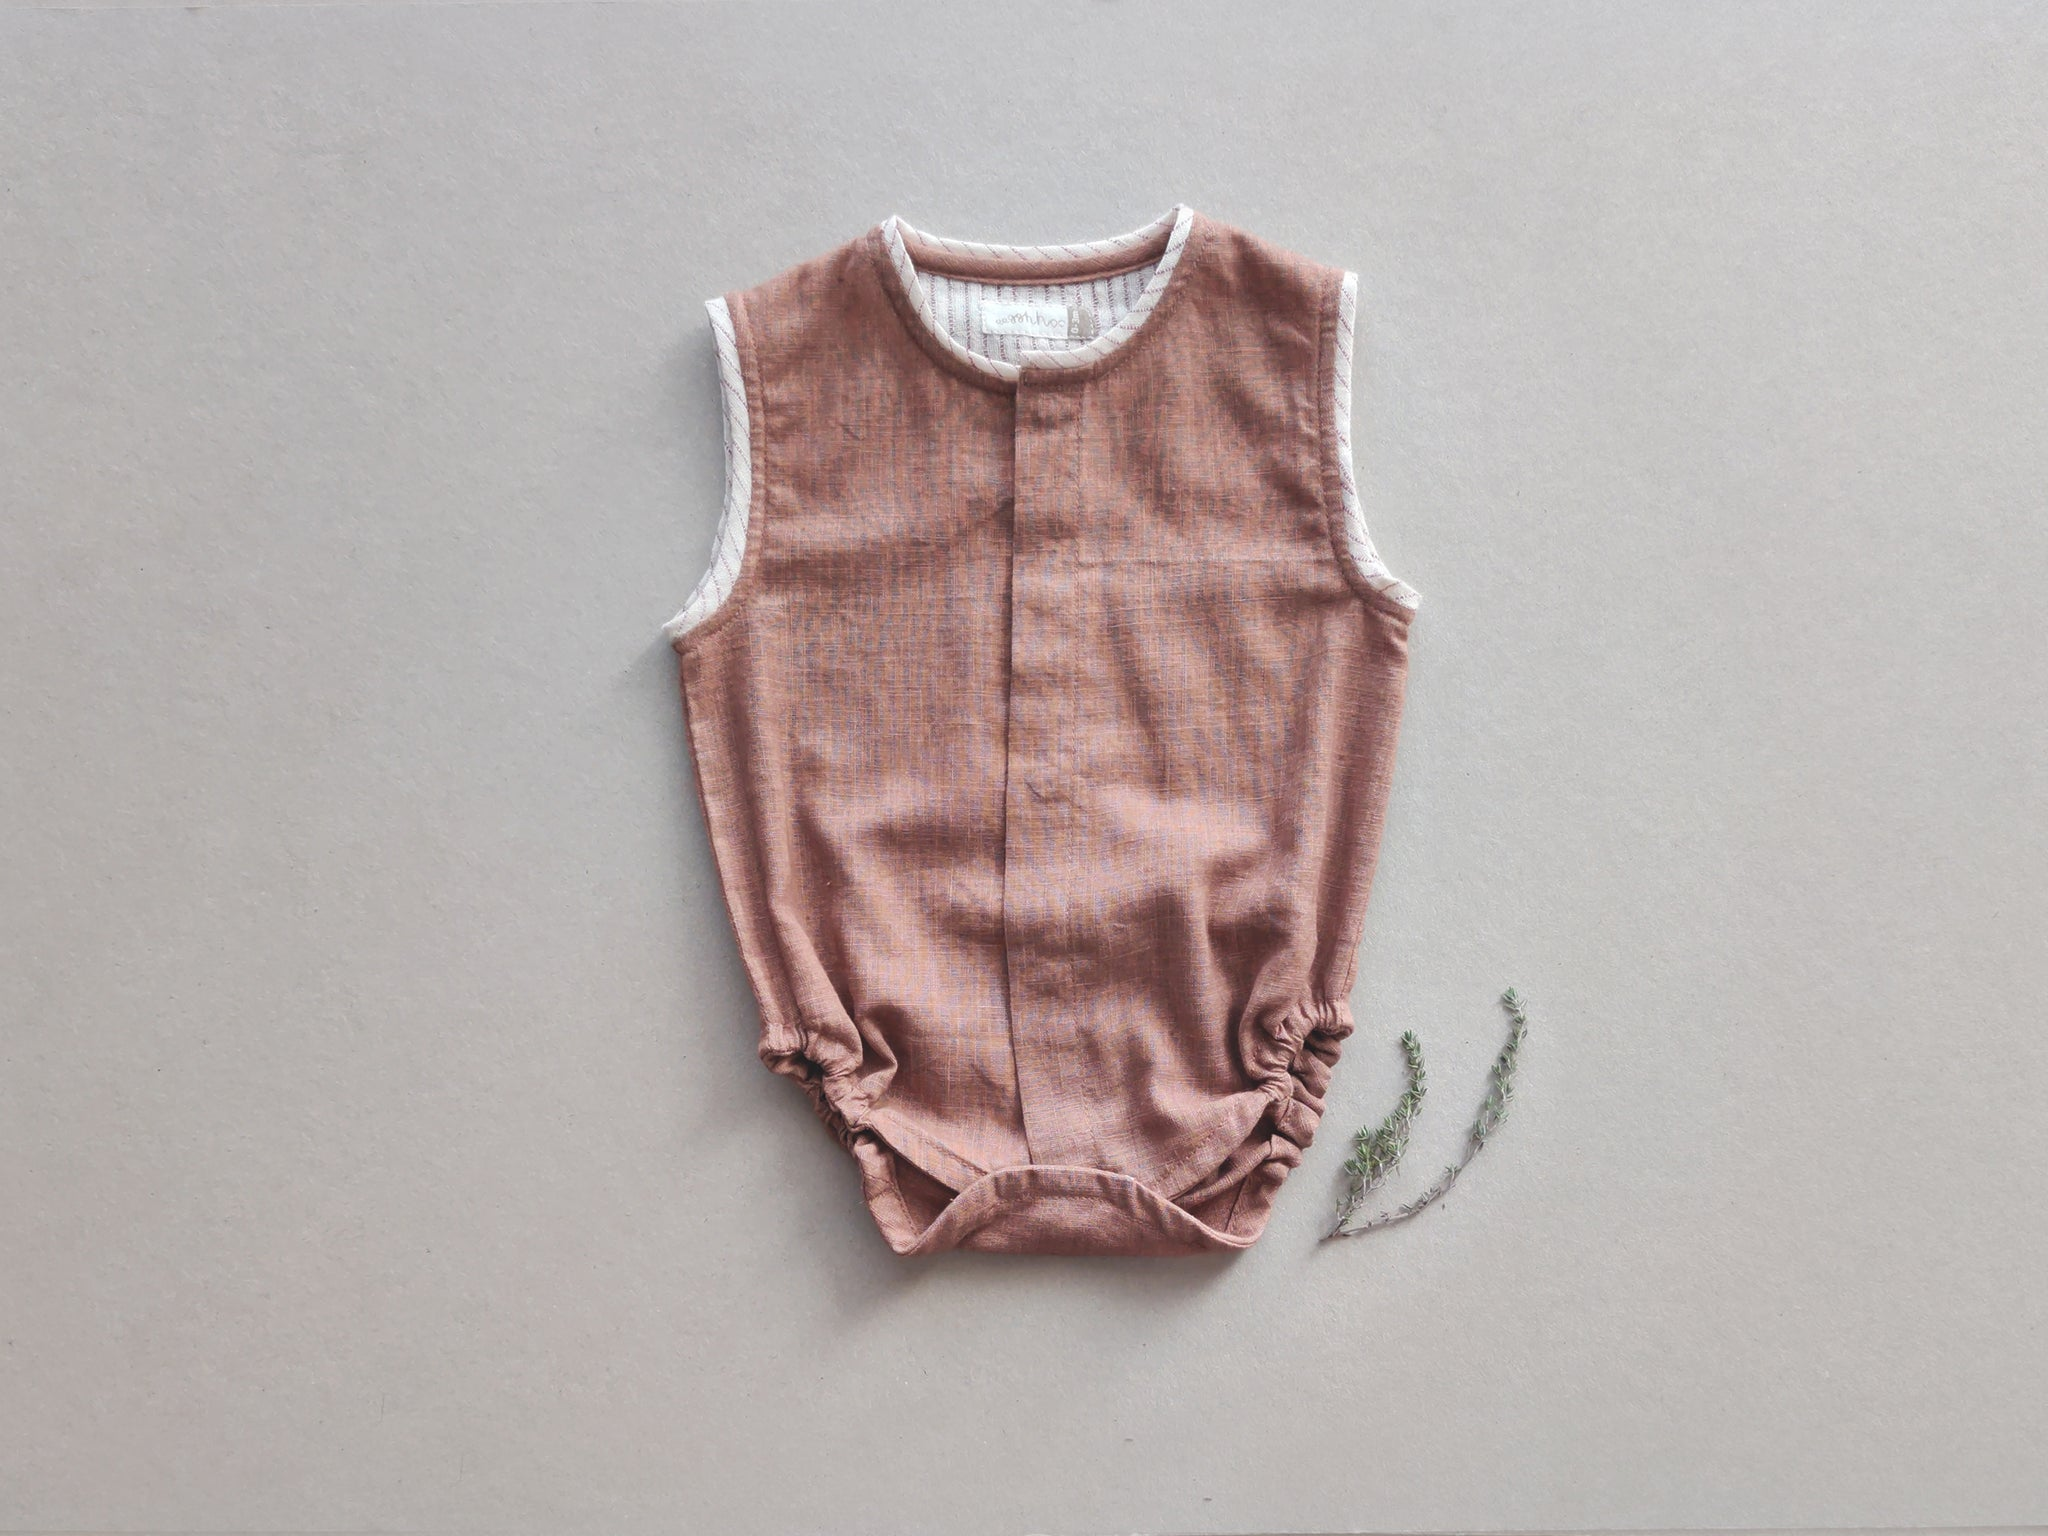 Organic & Natural Dye - Summer Baby Onesie Set - Newborn Baby Homecoming Gift Bundle - Set of 2